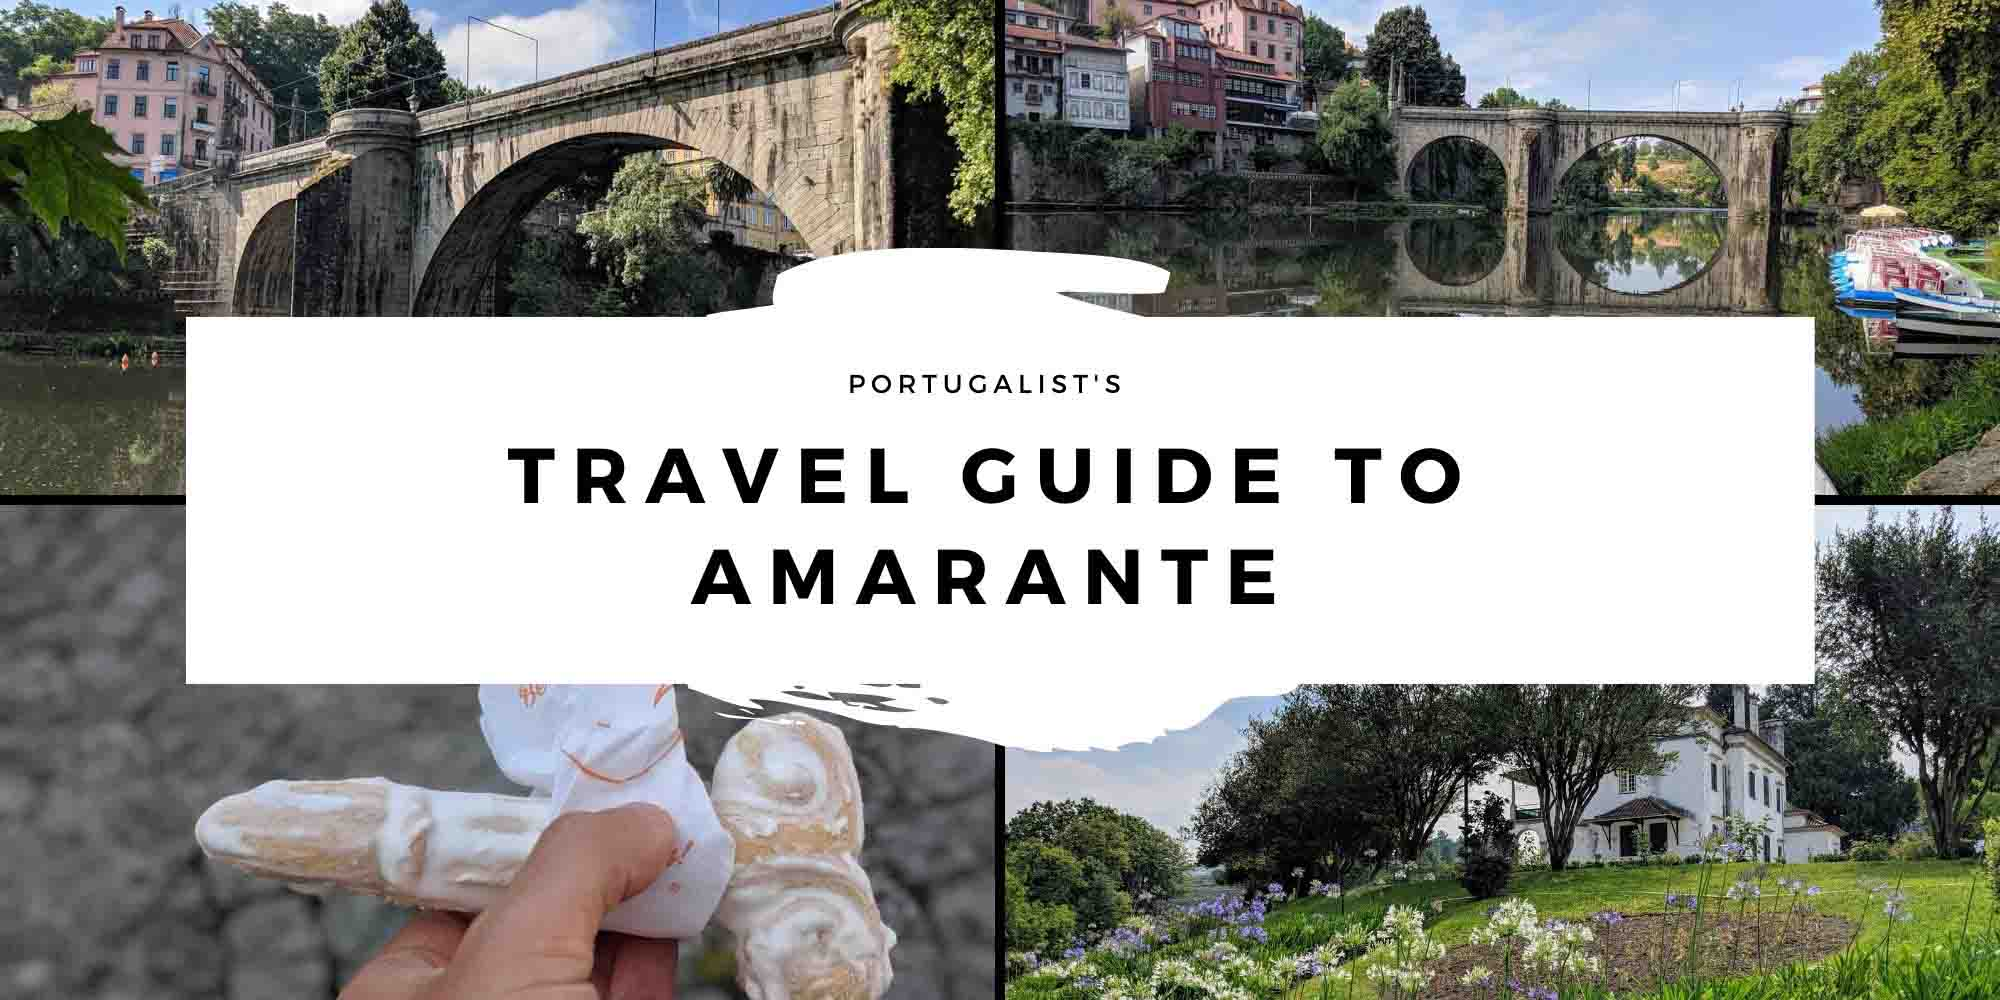 Amarante guide header